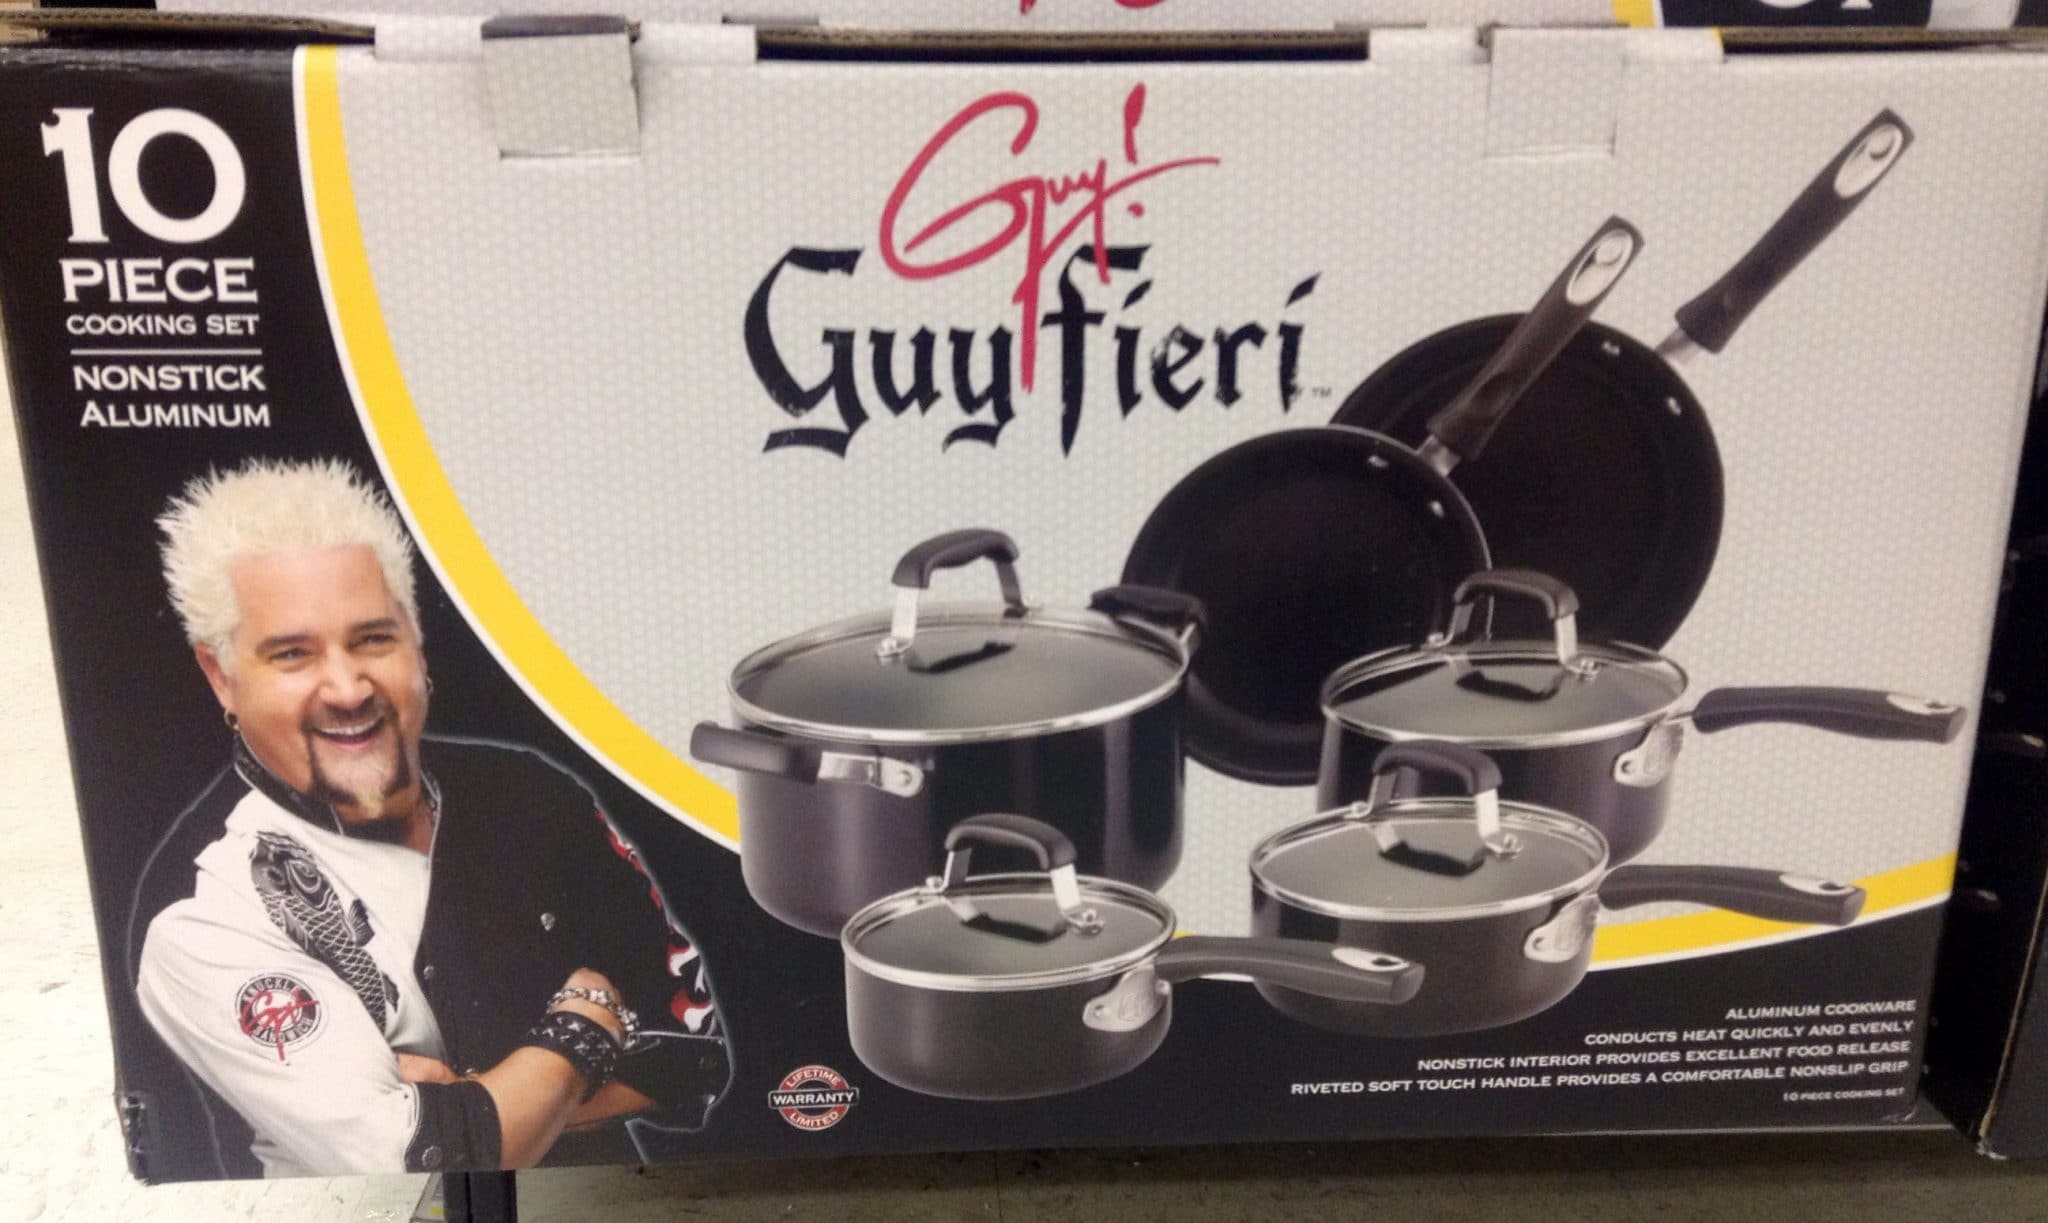 best kitchen set, what are the best kitchen pots and pans